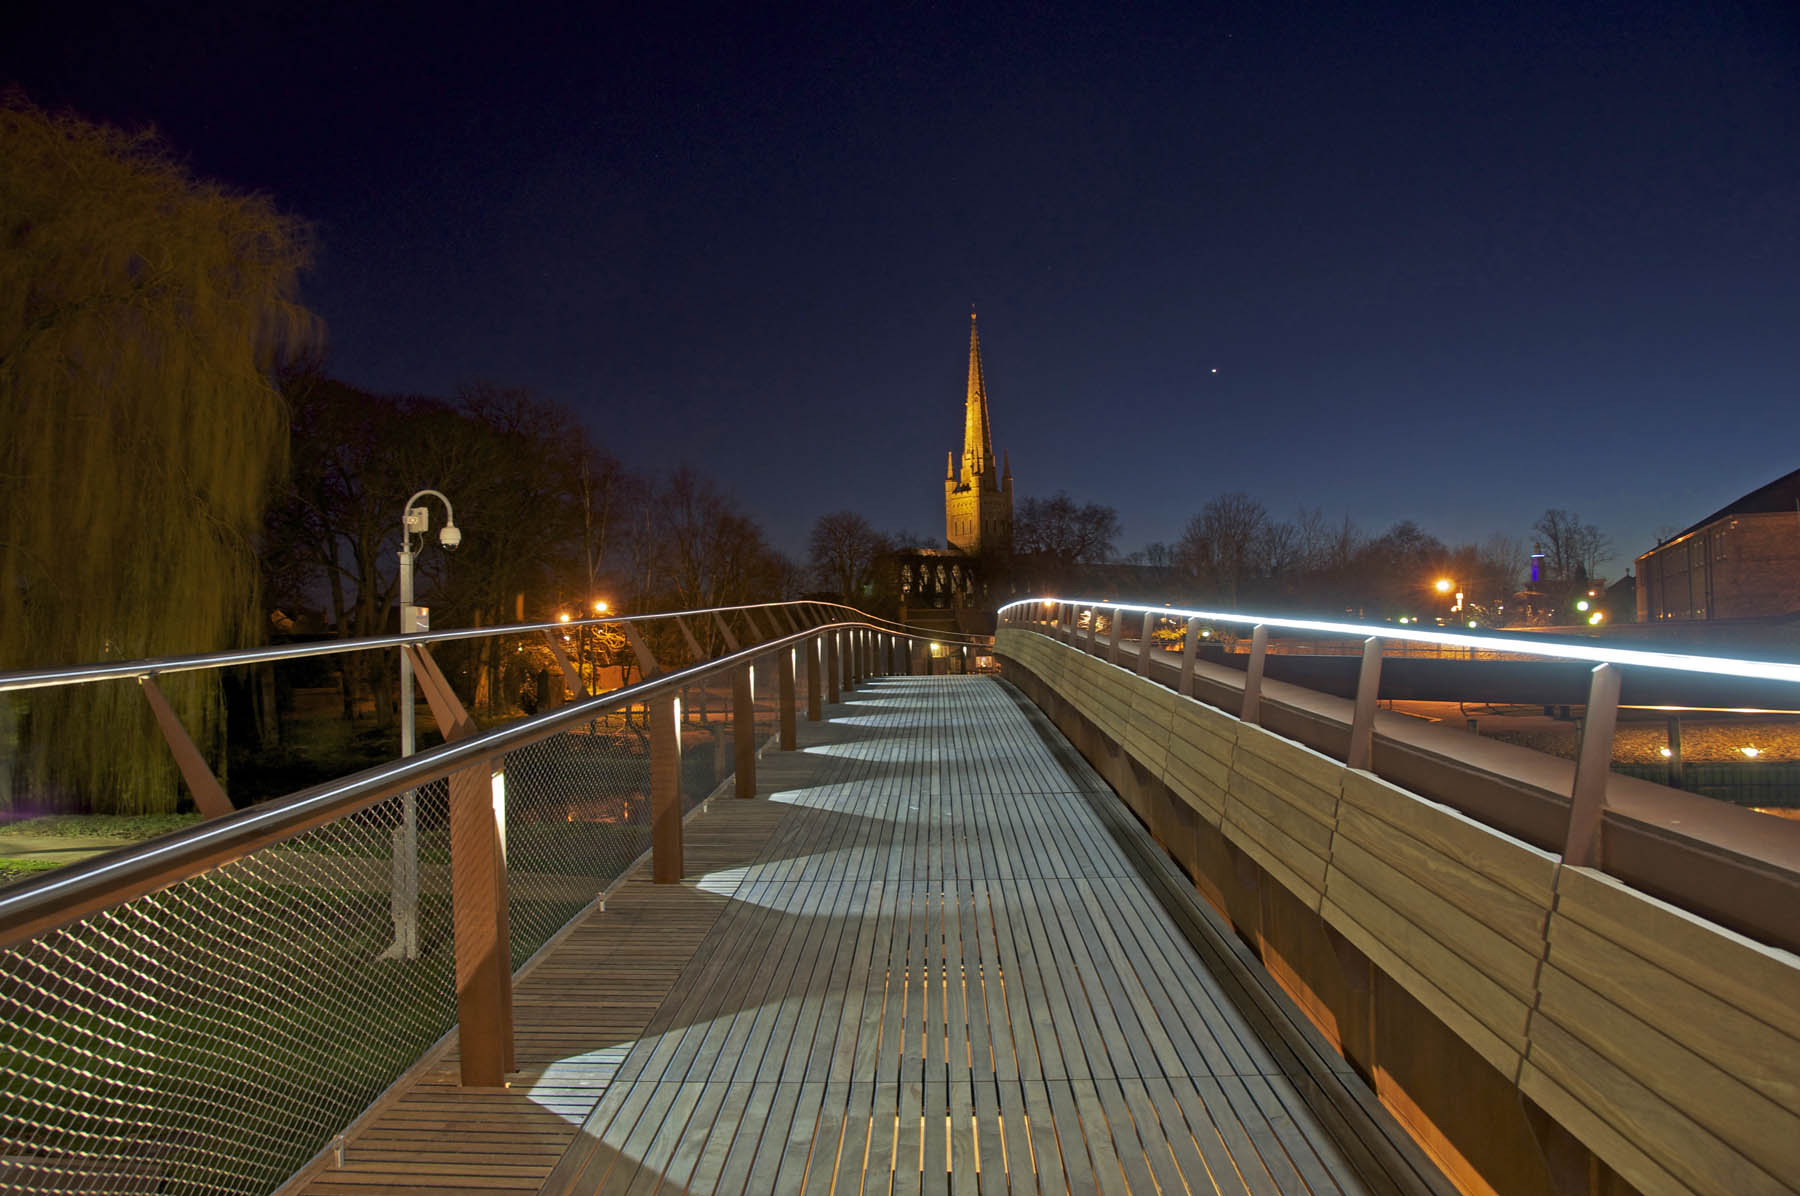 Jarrold Bridge Norwich - Architectural Lighting for Bridges & Walkways